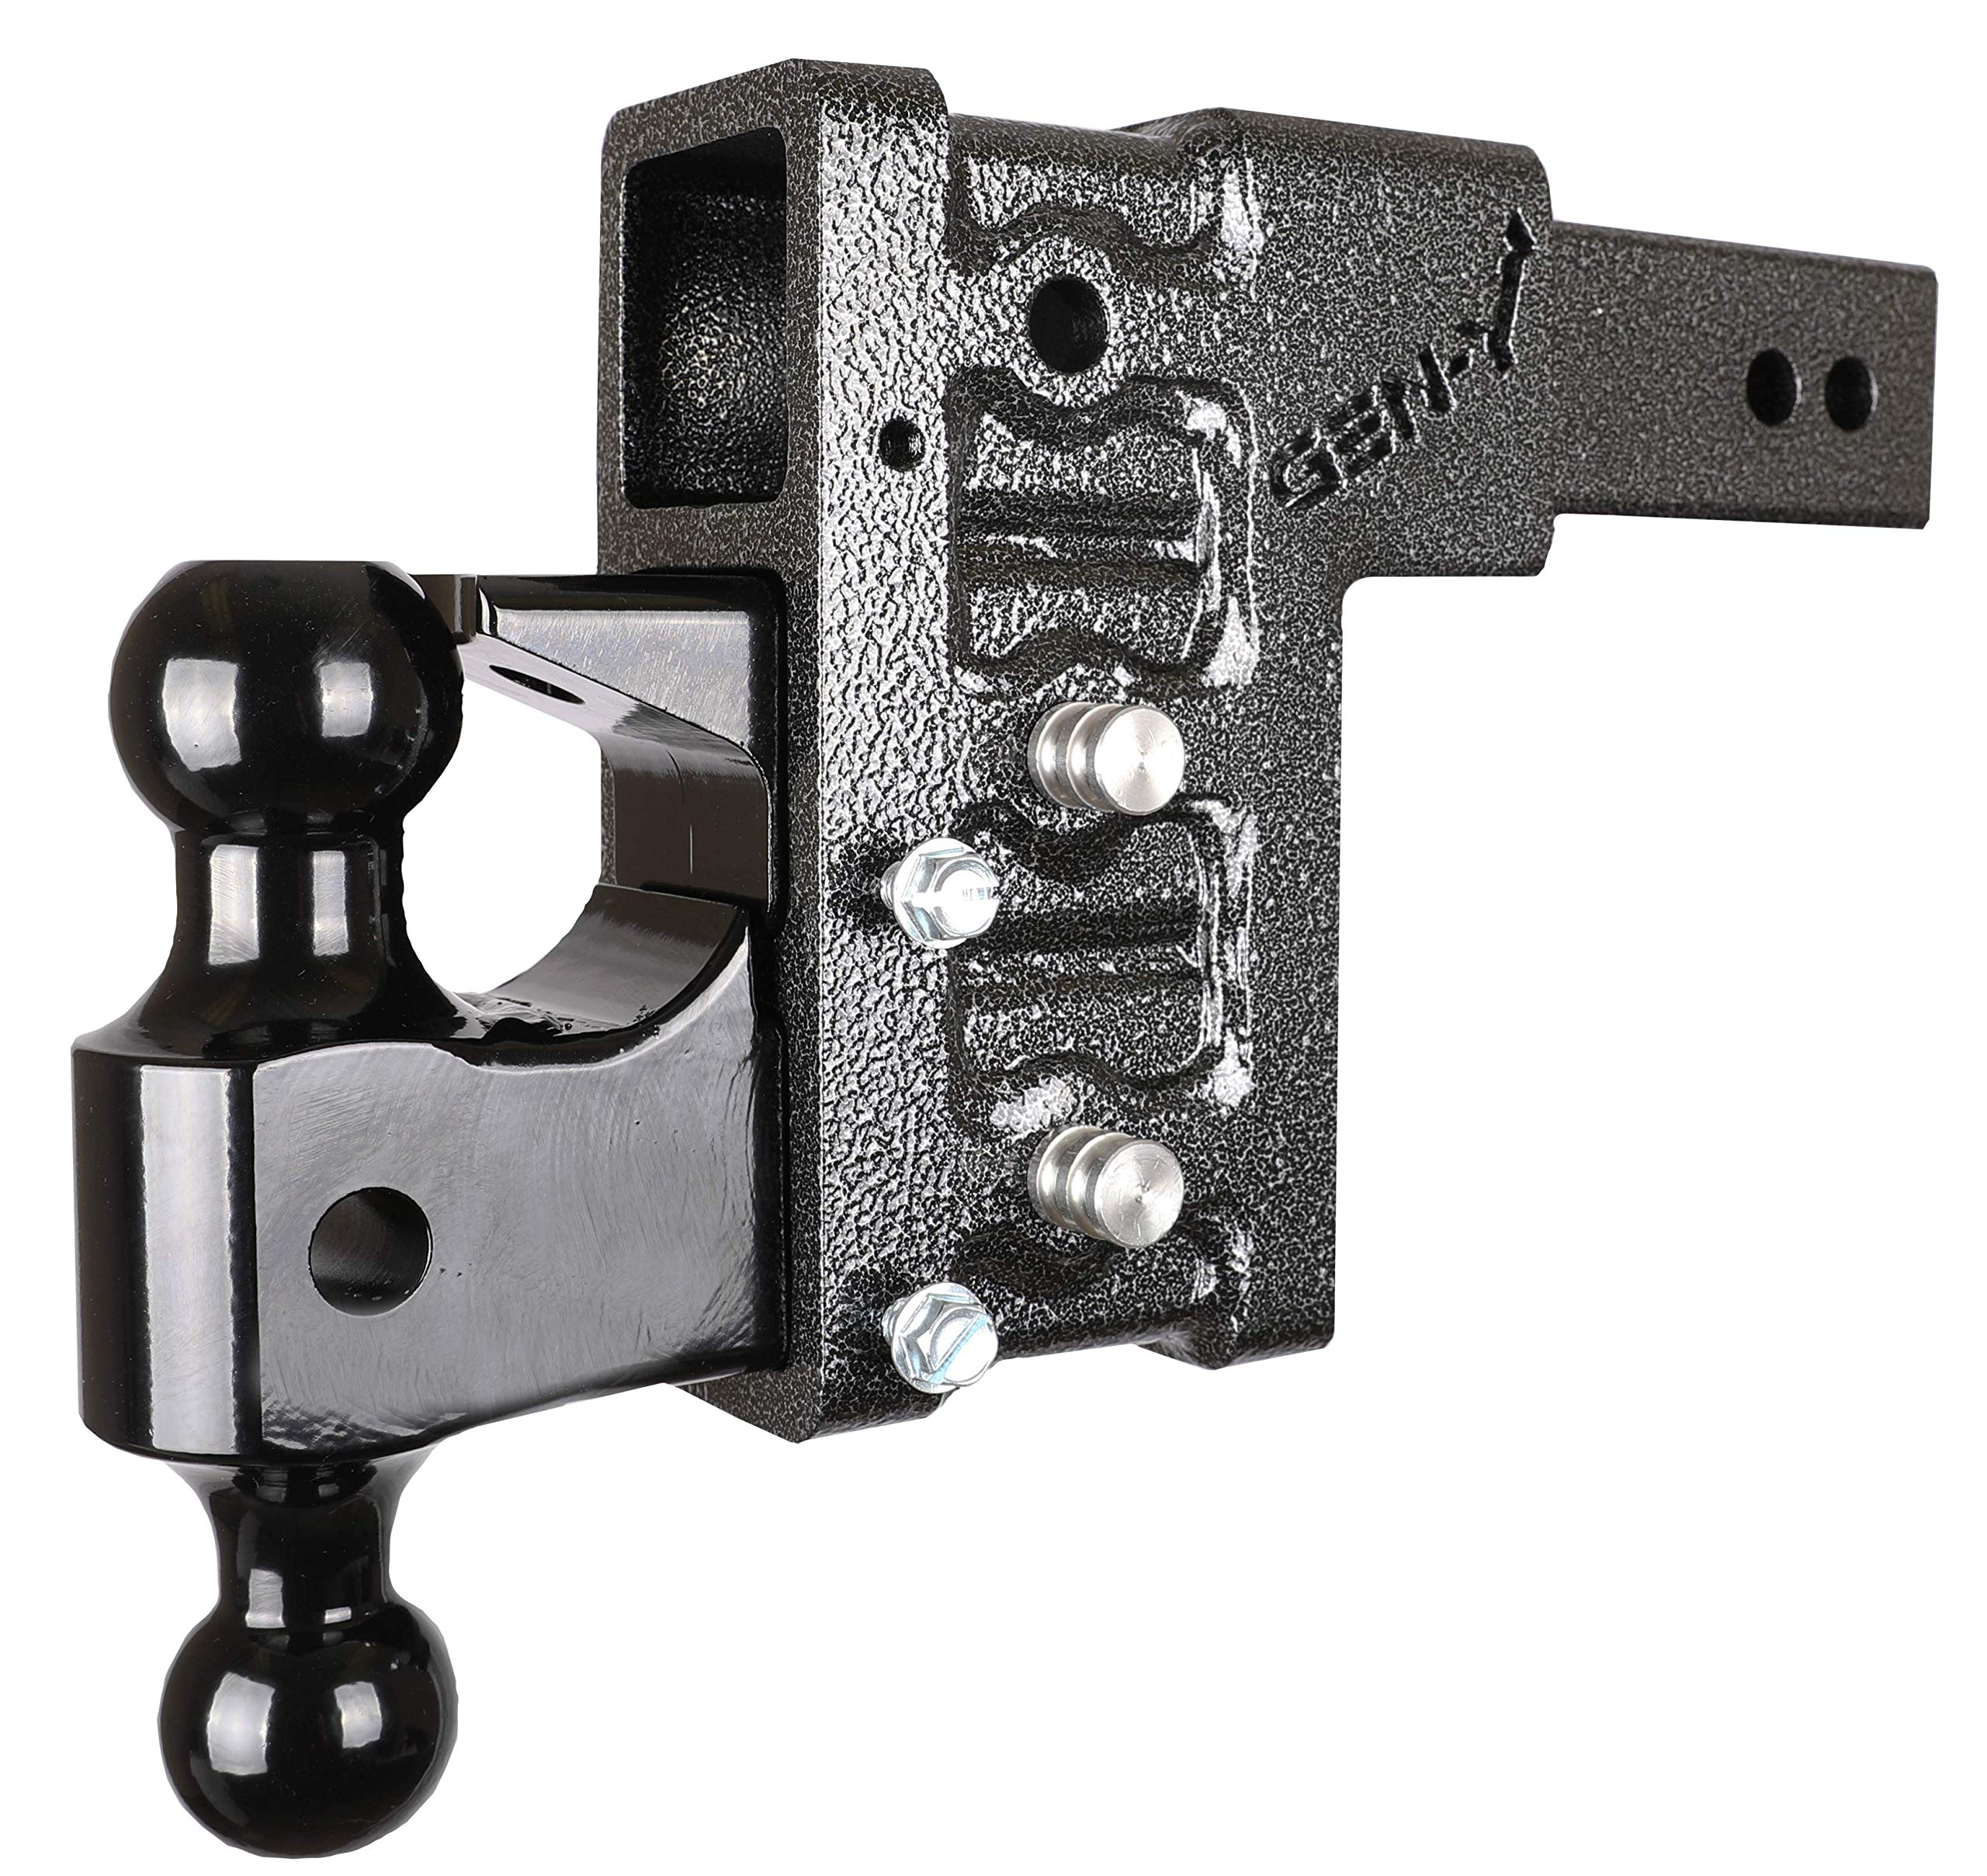 Drop Hitch ONLY Works 3'' ID Receiver Hitch GH 1723, Combo Includes Dual Hitch Ball, Pintle Lock & 2-3/4'' Hitch pins (6'' Drop 3'' Receiver) by Gen•Y